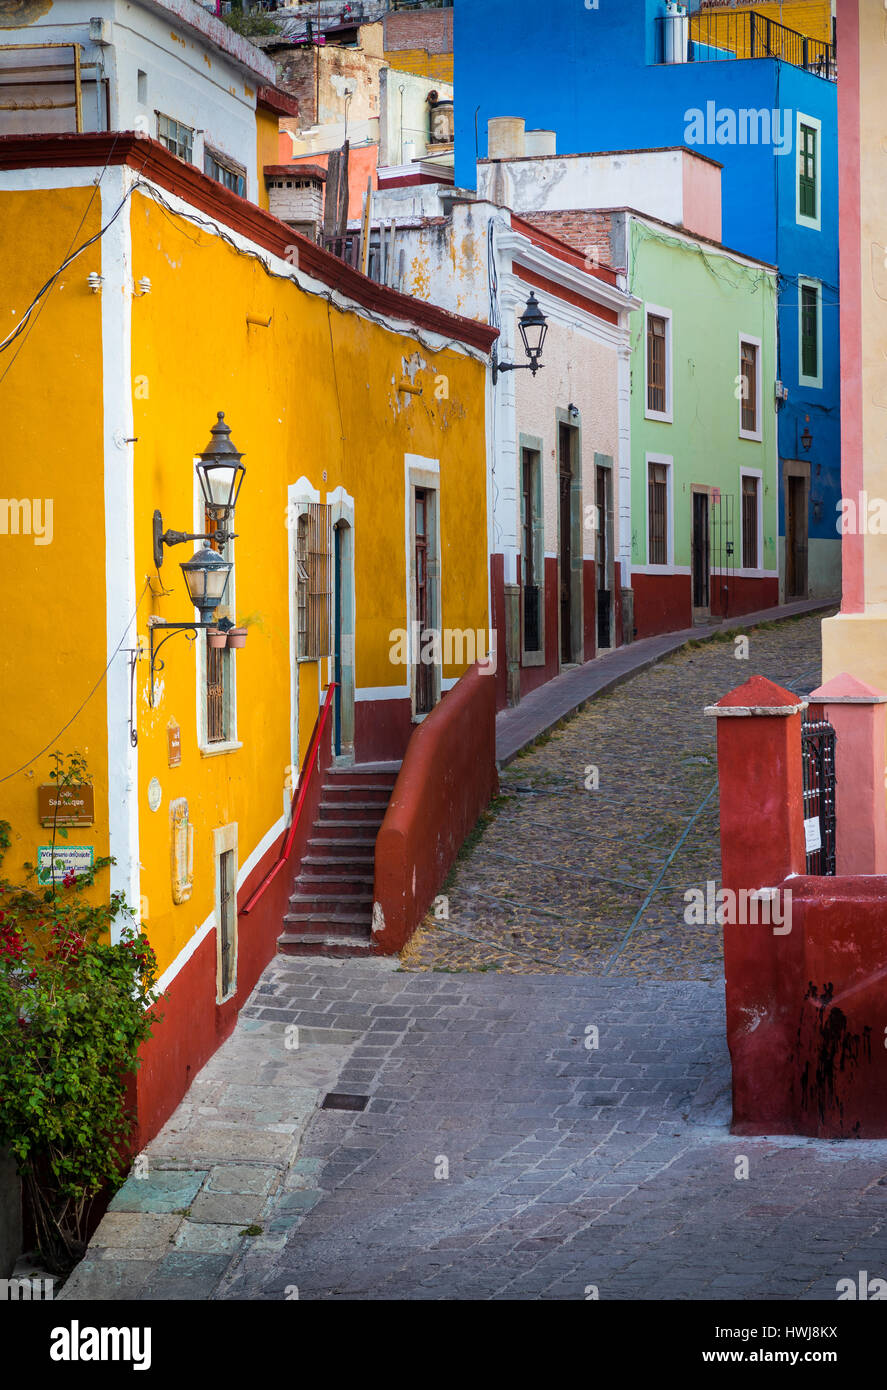 Typical colorful street in Guanajuato, Mexico with its Spanish colonial buildings. ------ Guanajuato is a city and - Stock Image